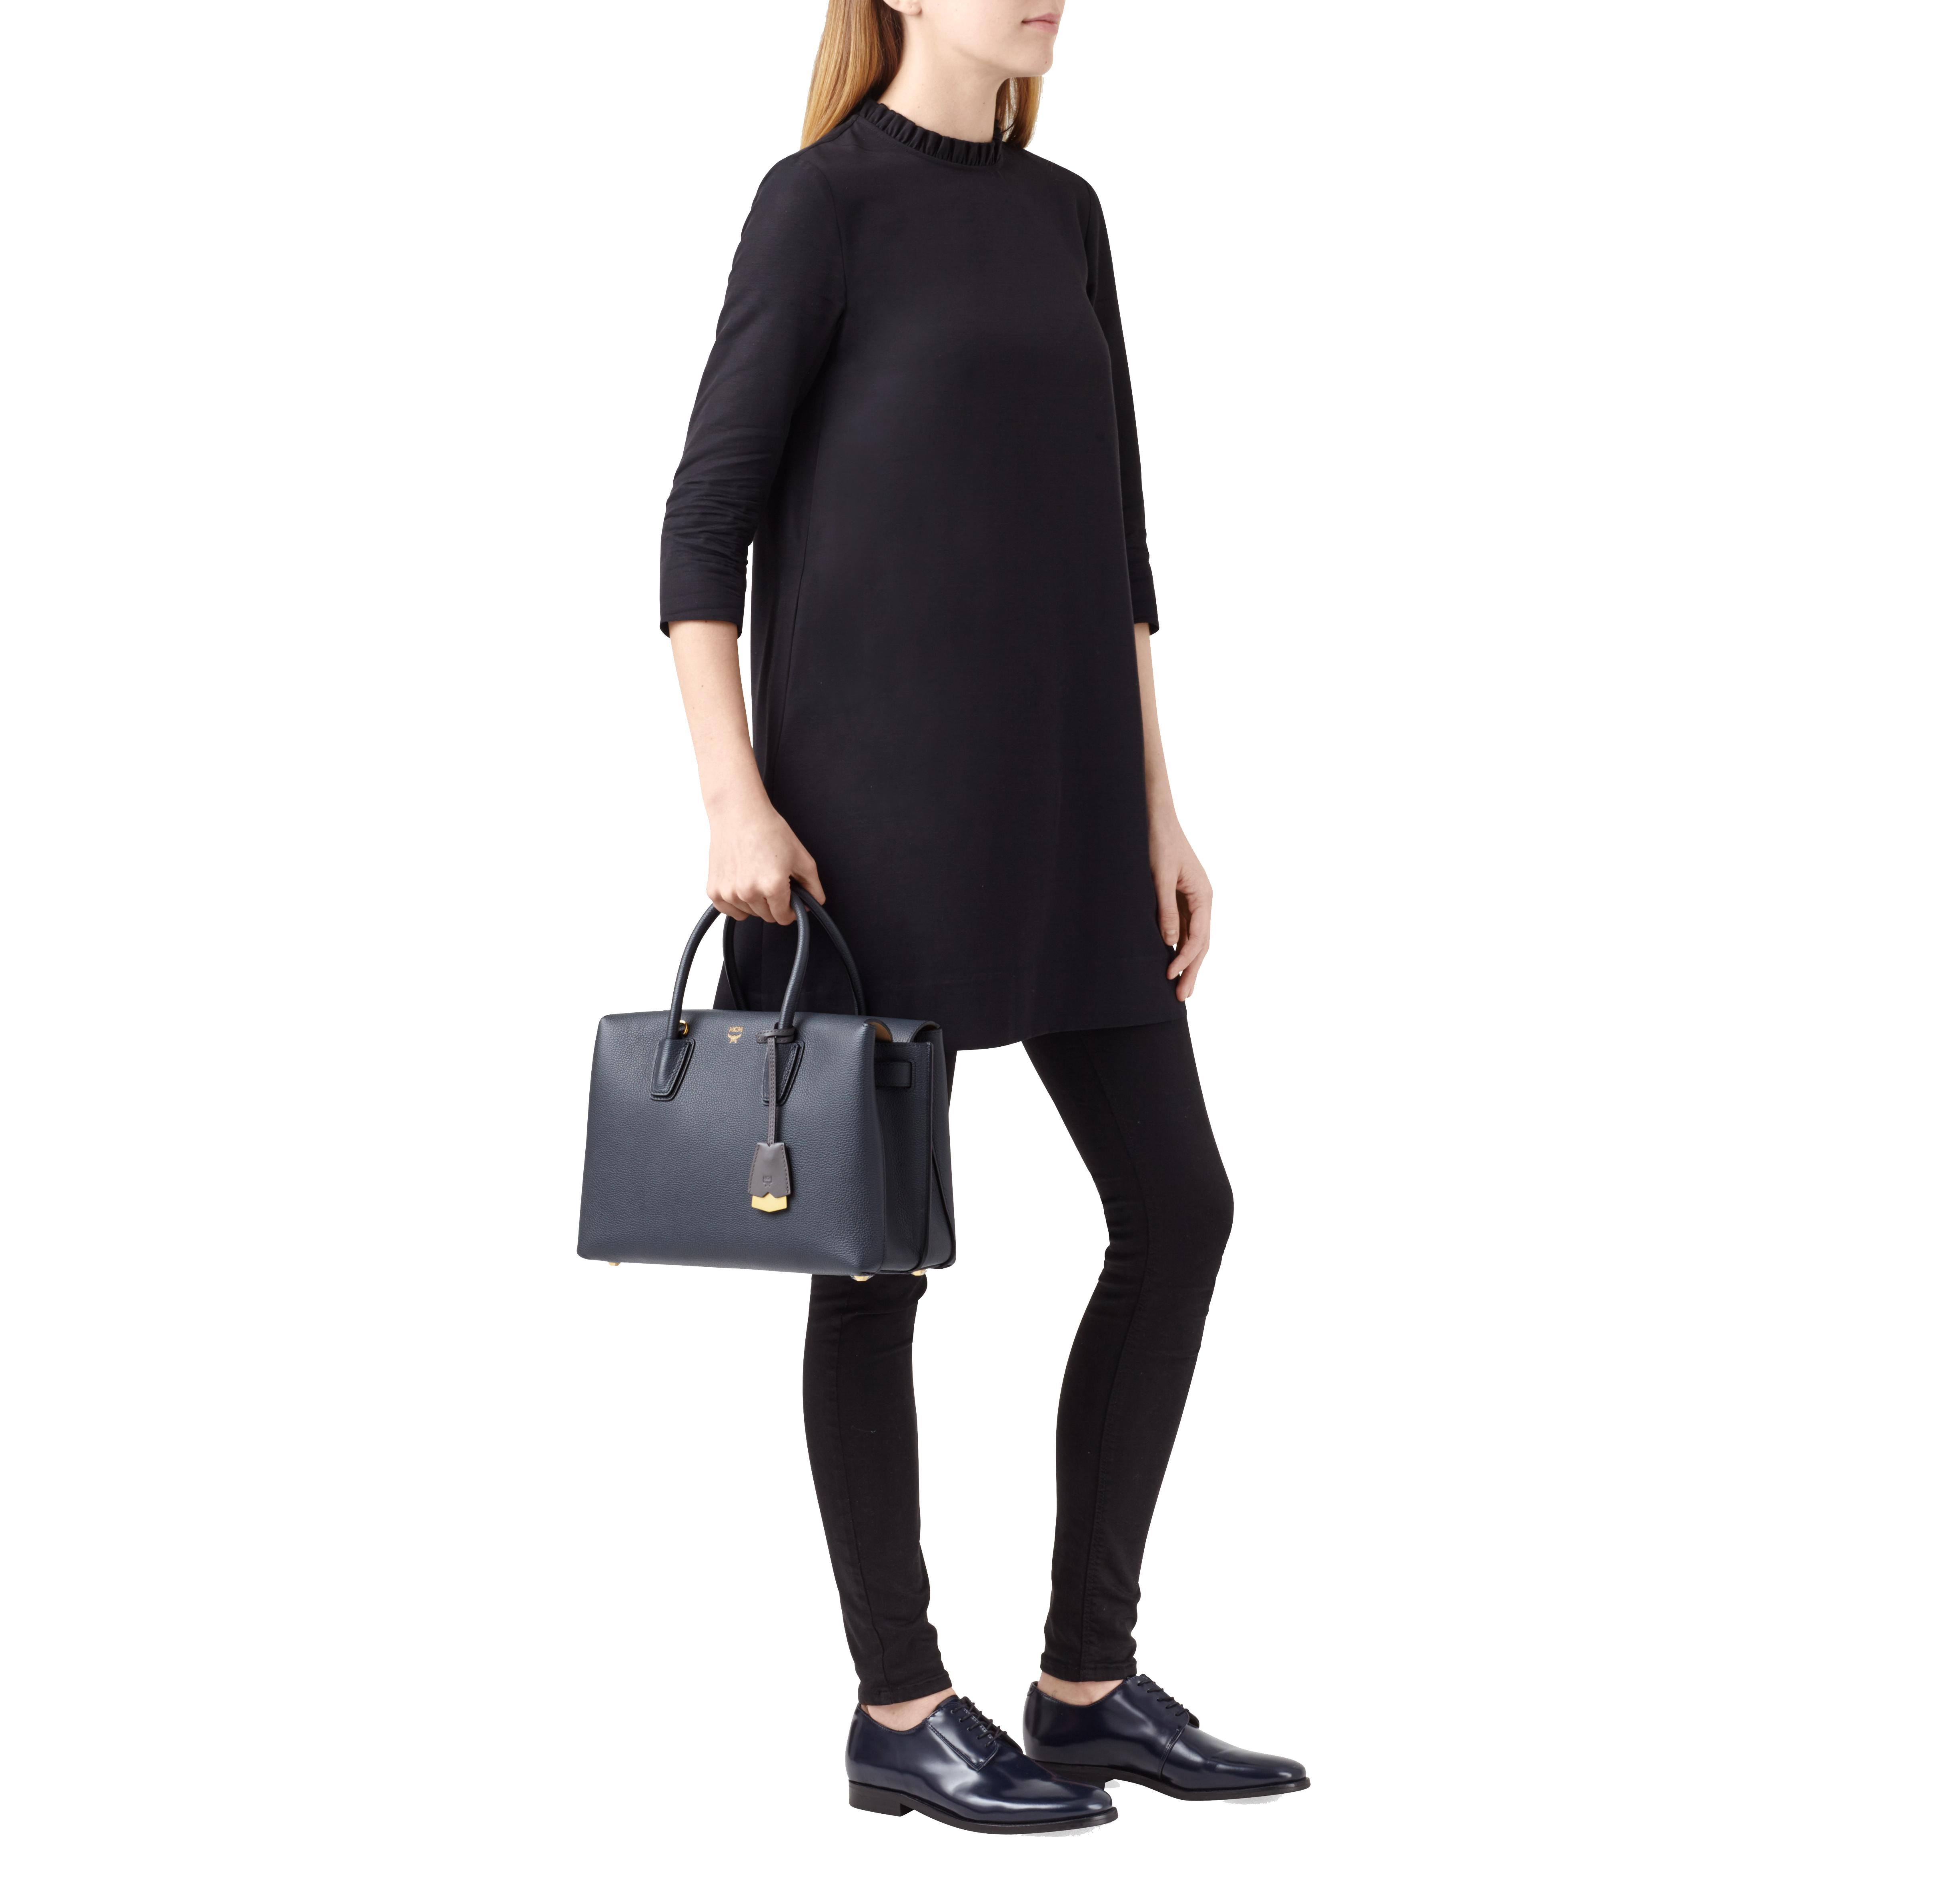 MCM Milla Tote In Grained Leather in Black